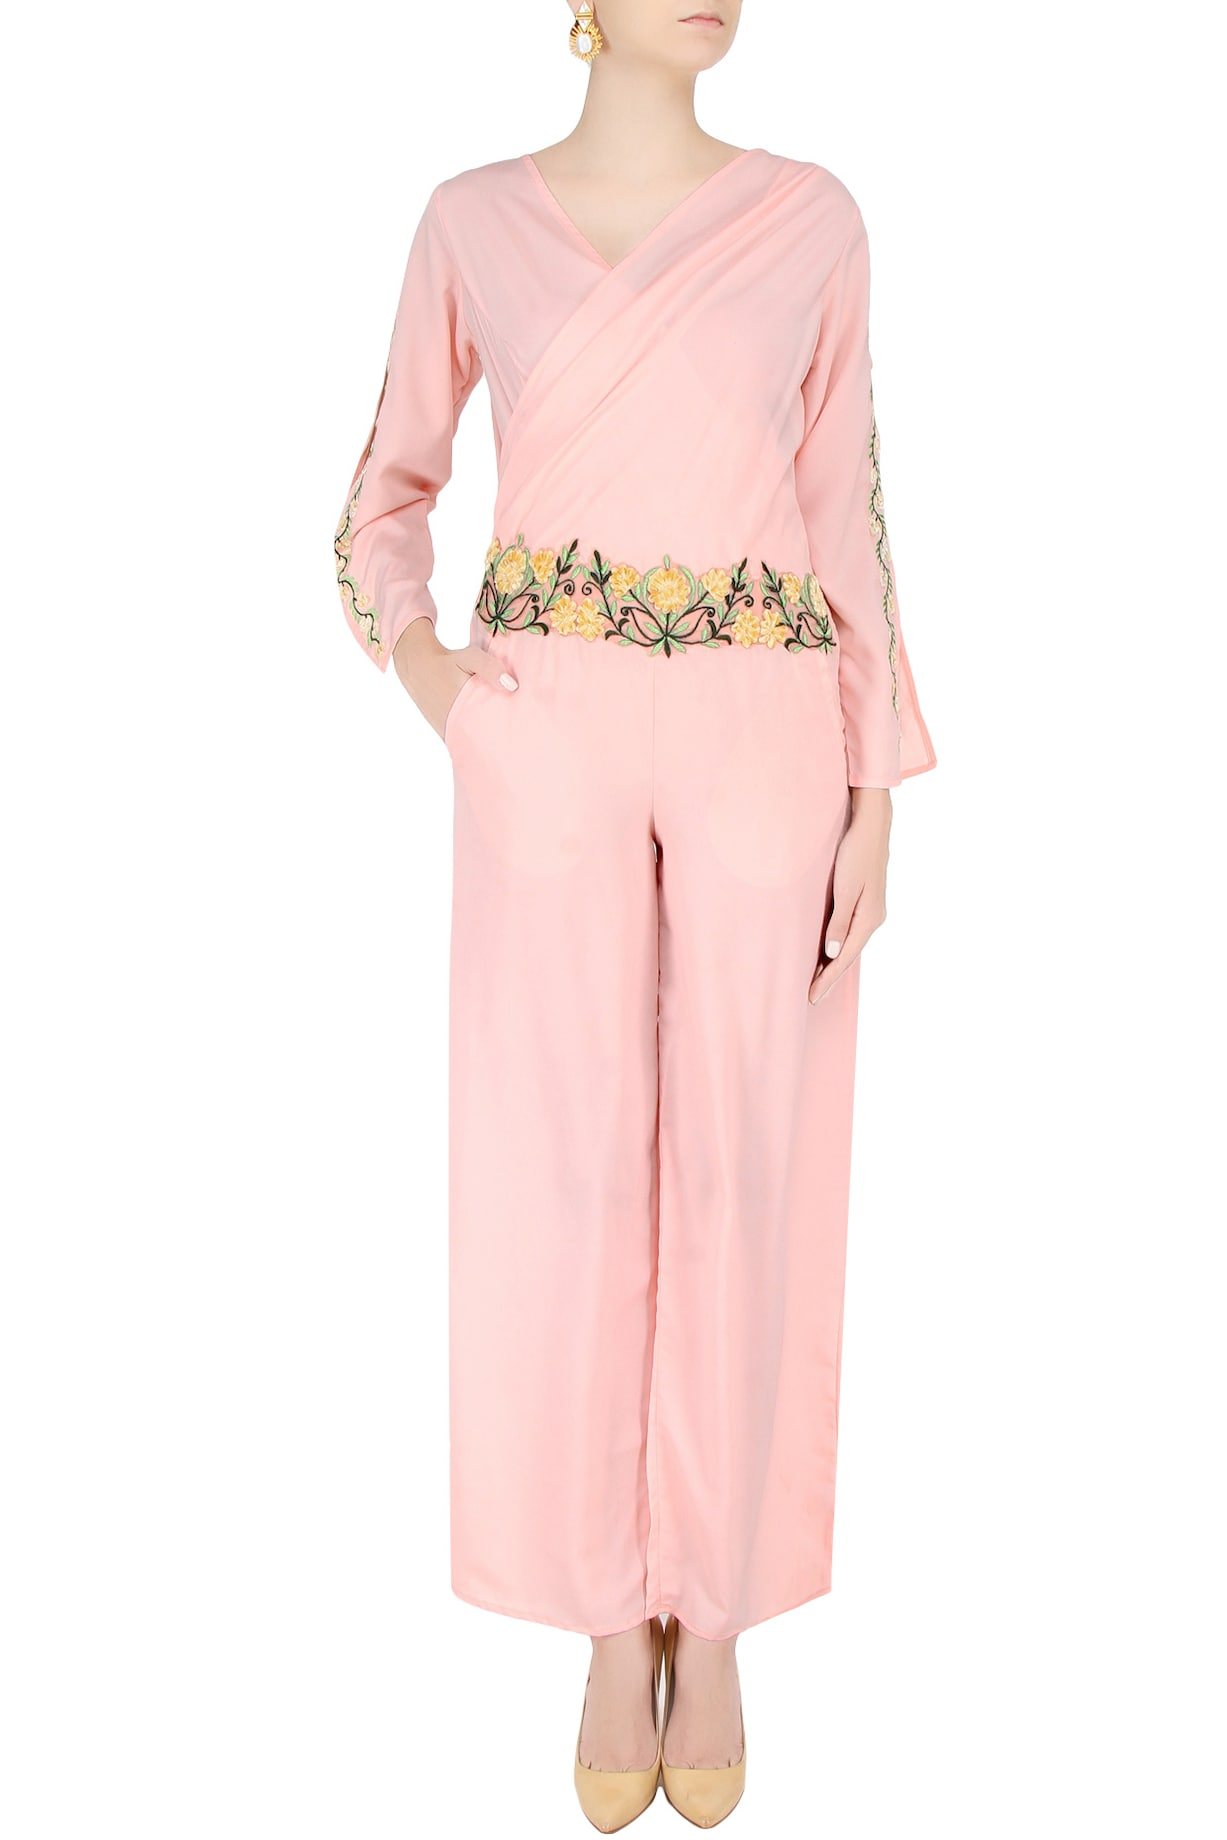 Vidhi Anand Jump Suits